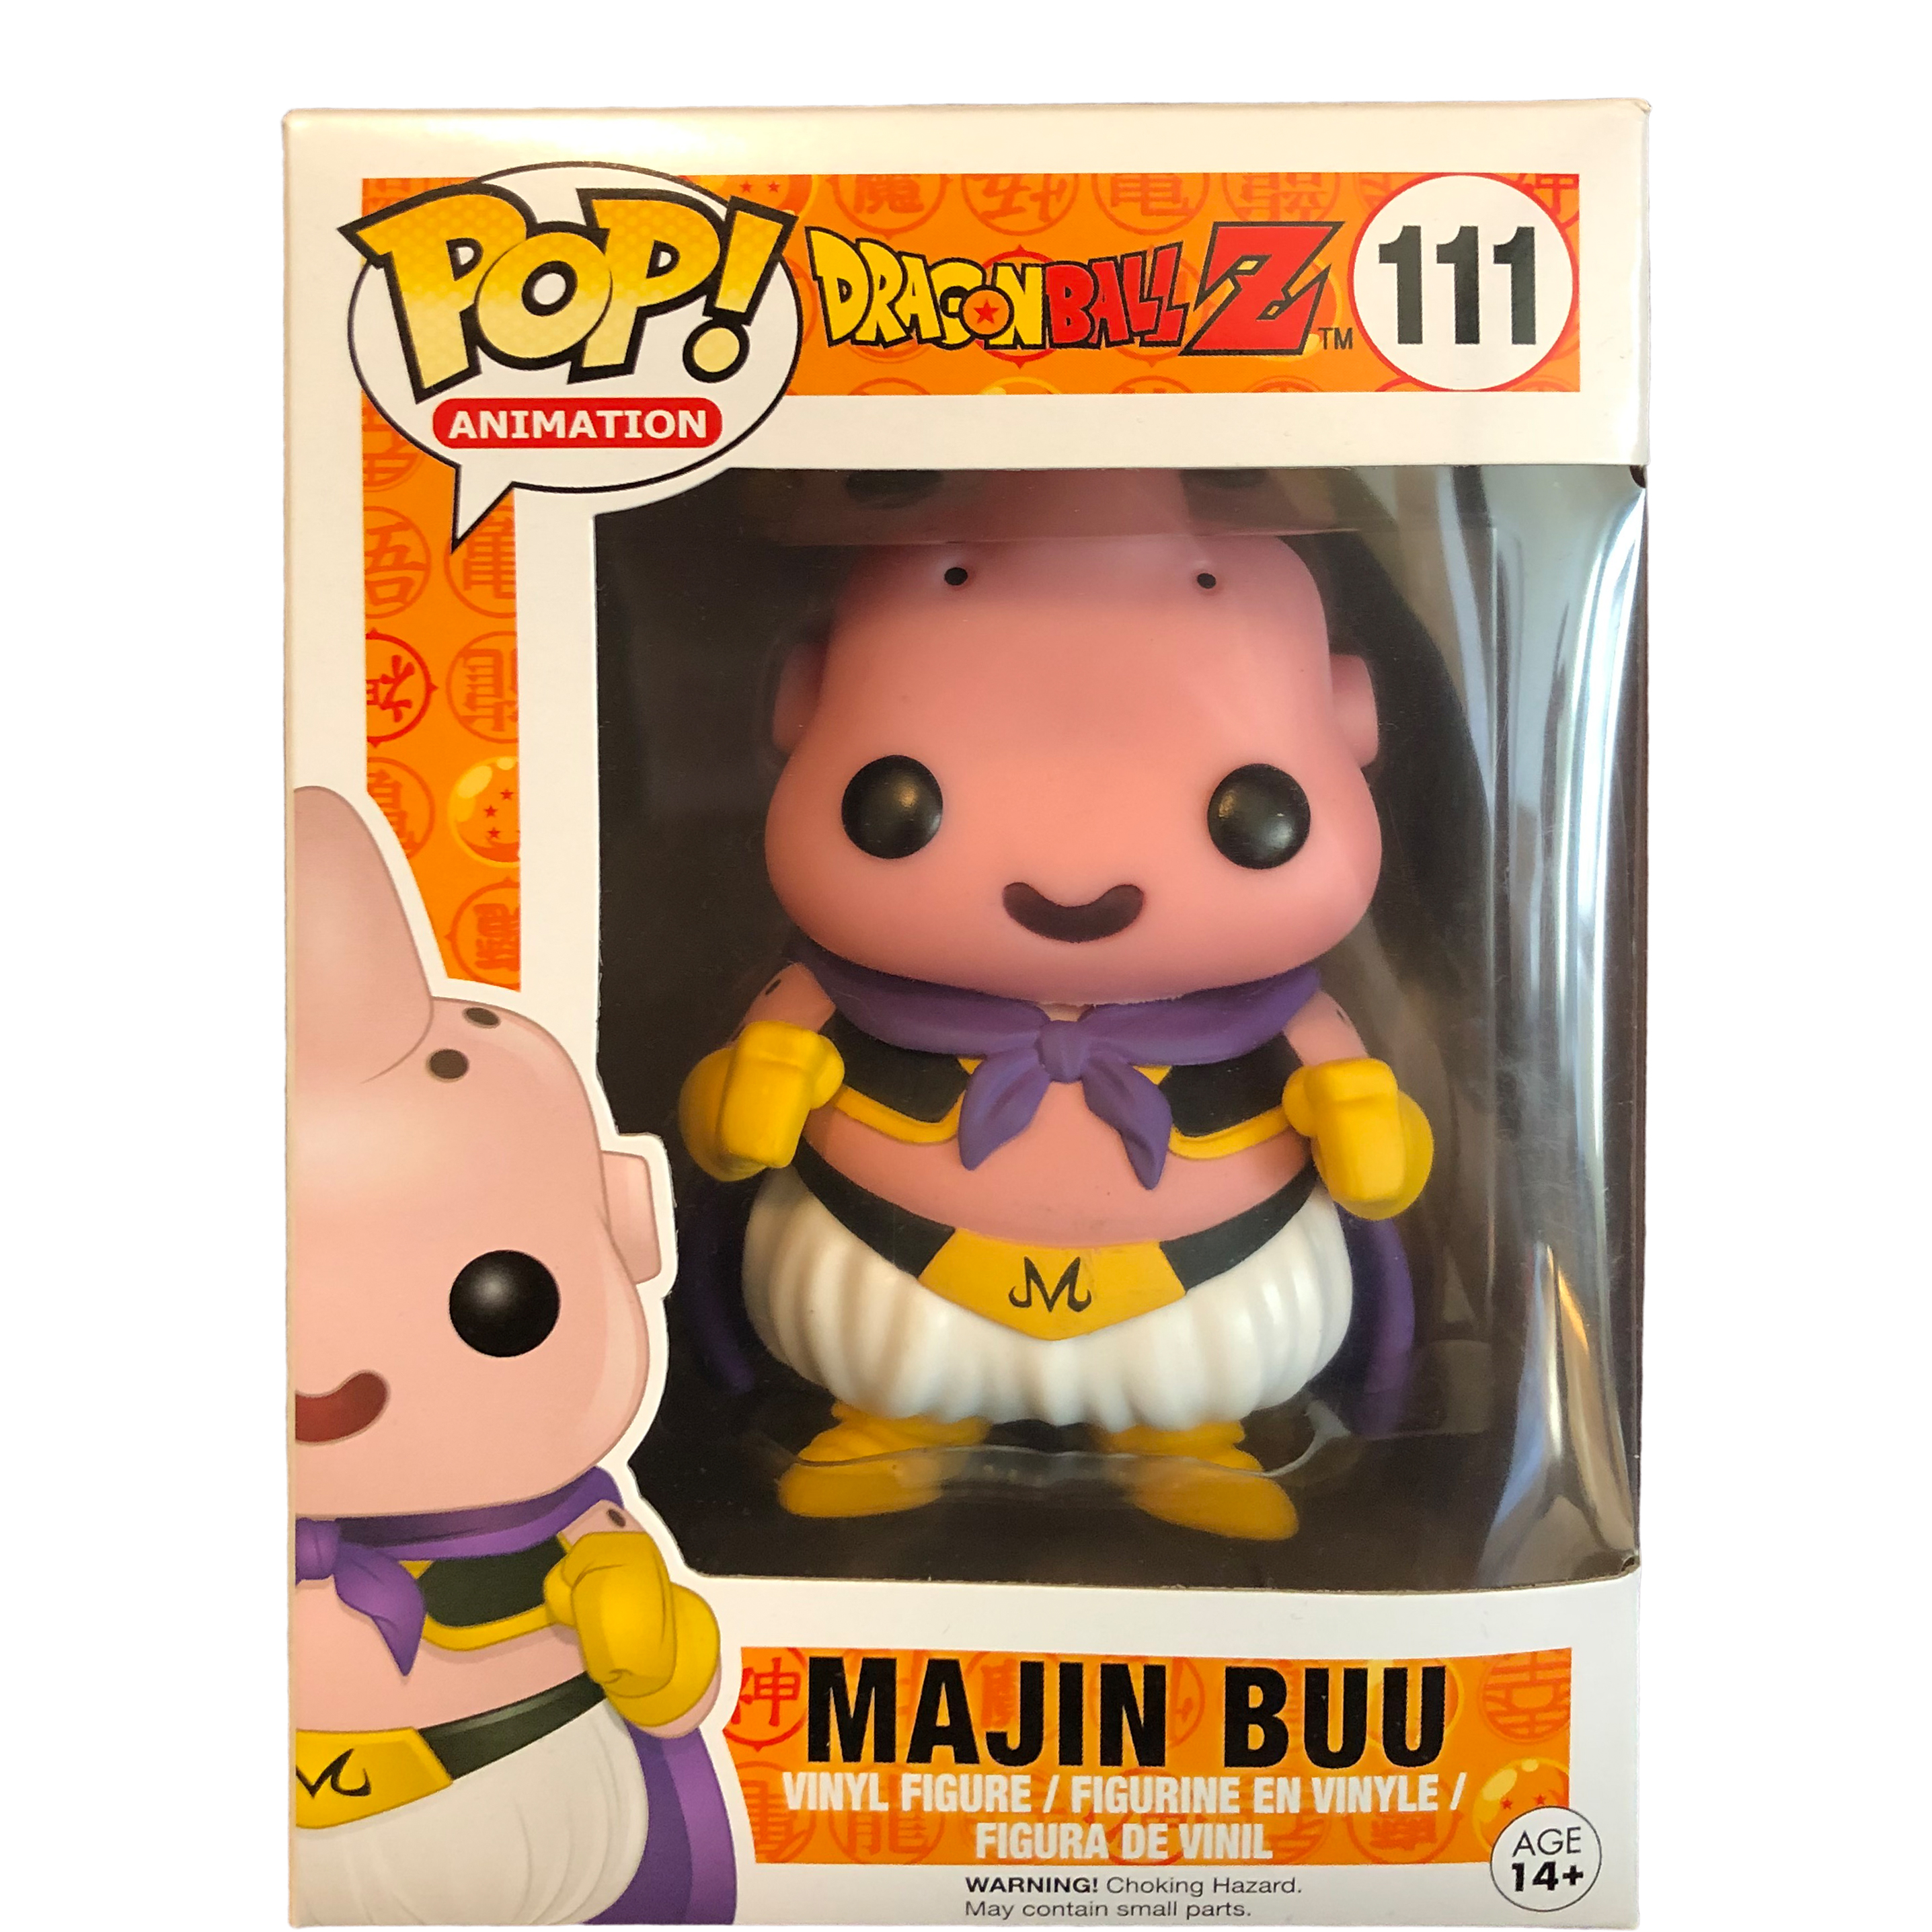 Funko Pop Animation Majin Buu Vinyl Figure Item #7429 Dragonball Z